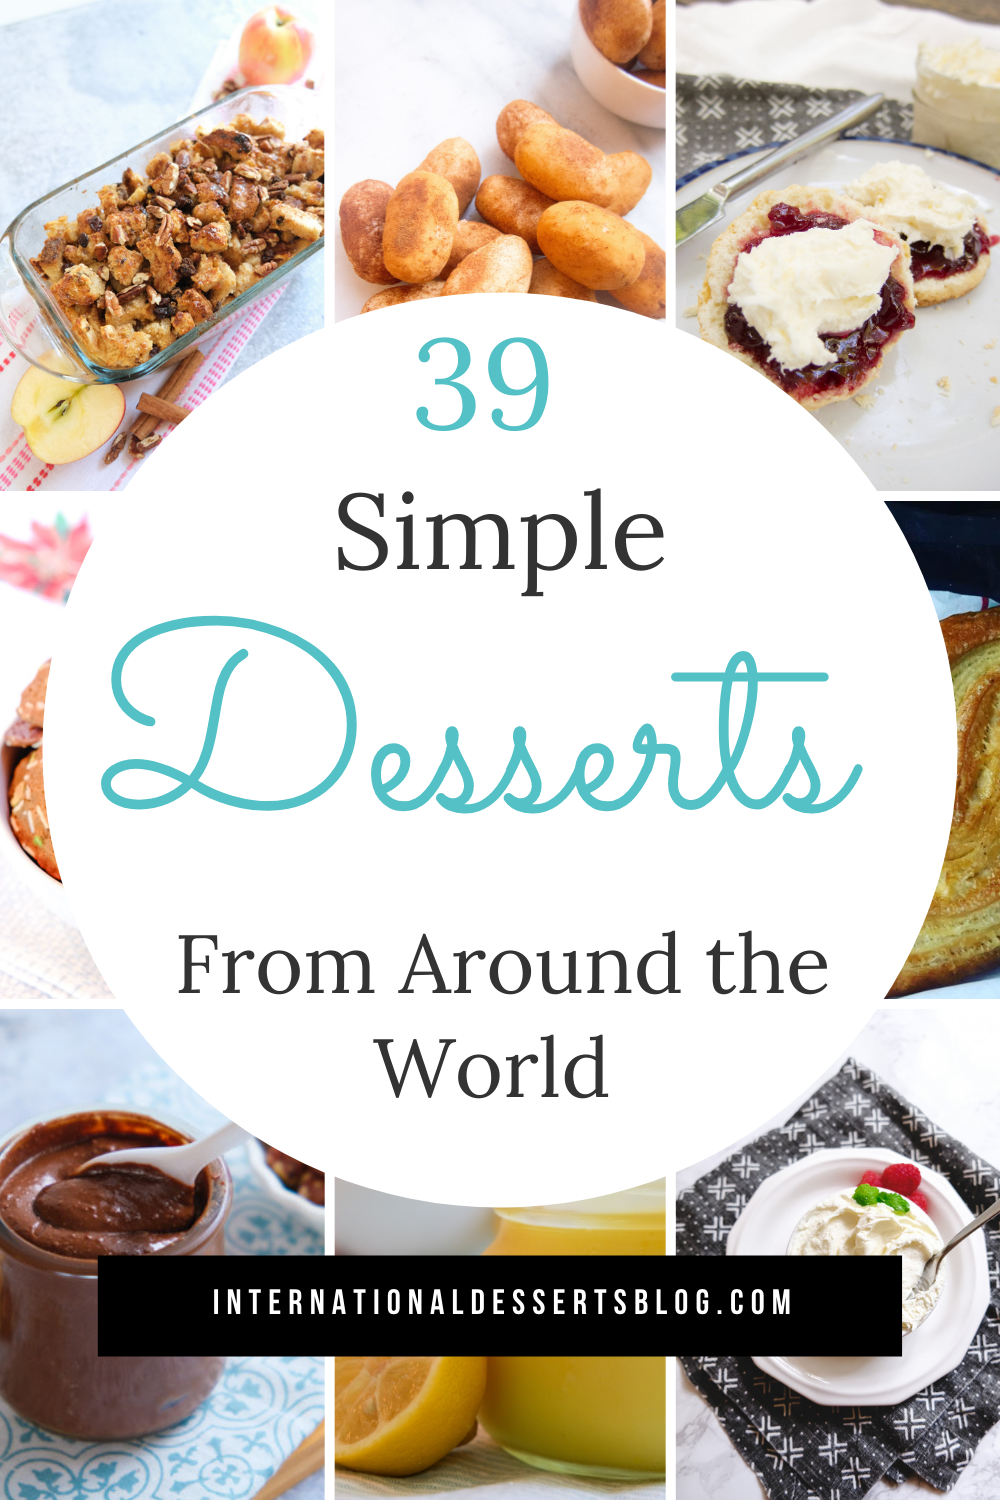 Desserts From Around The World 39 Easy Recipes To Make At Home Using Mostly Pantry Ingredients Dessert Recipes Easy Homemade Dessert Recipes Easy Homemade Recipes Dessert